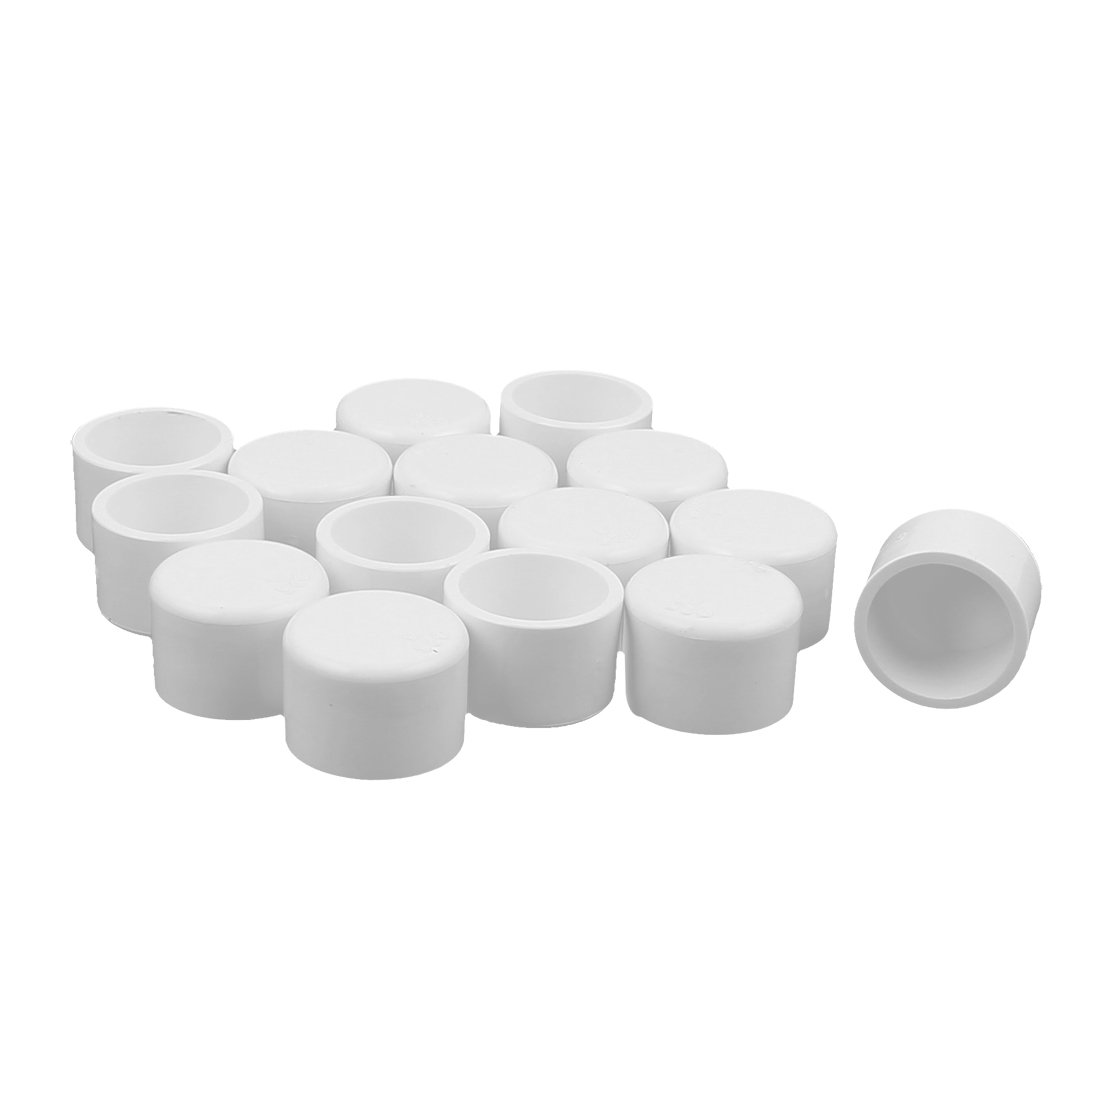 15Pcs Round Water Tubing Tube Pipe Fitting End Cap Cover White 25mm Inner Dia